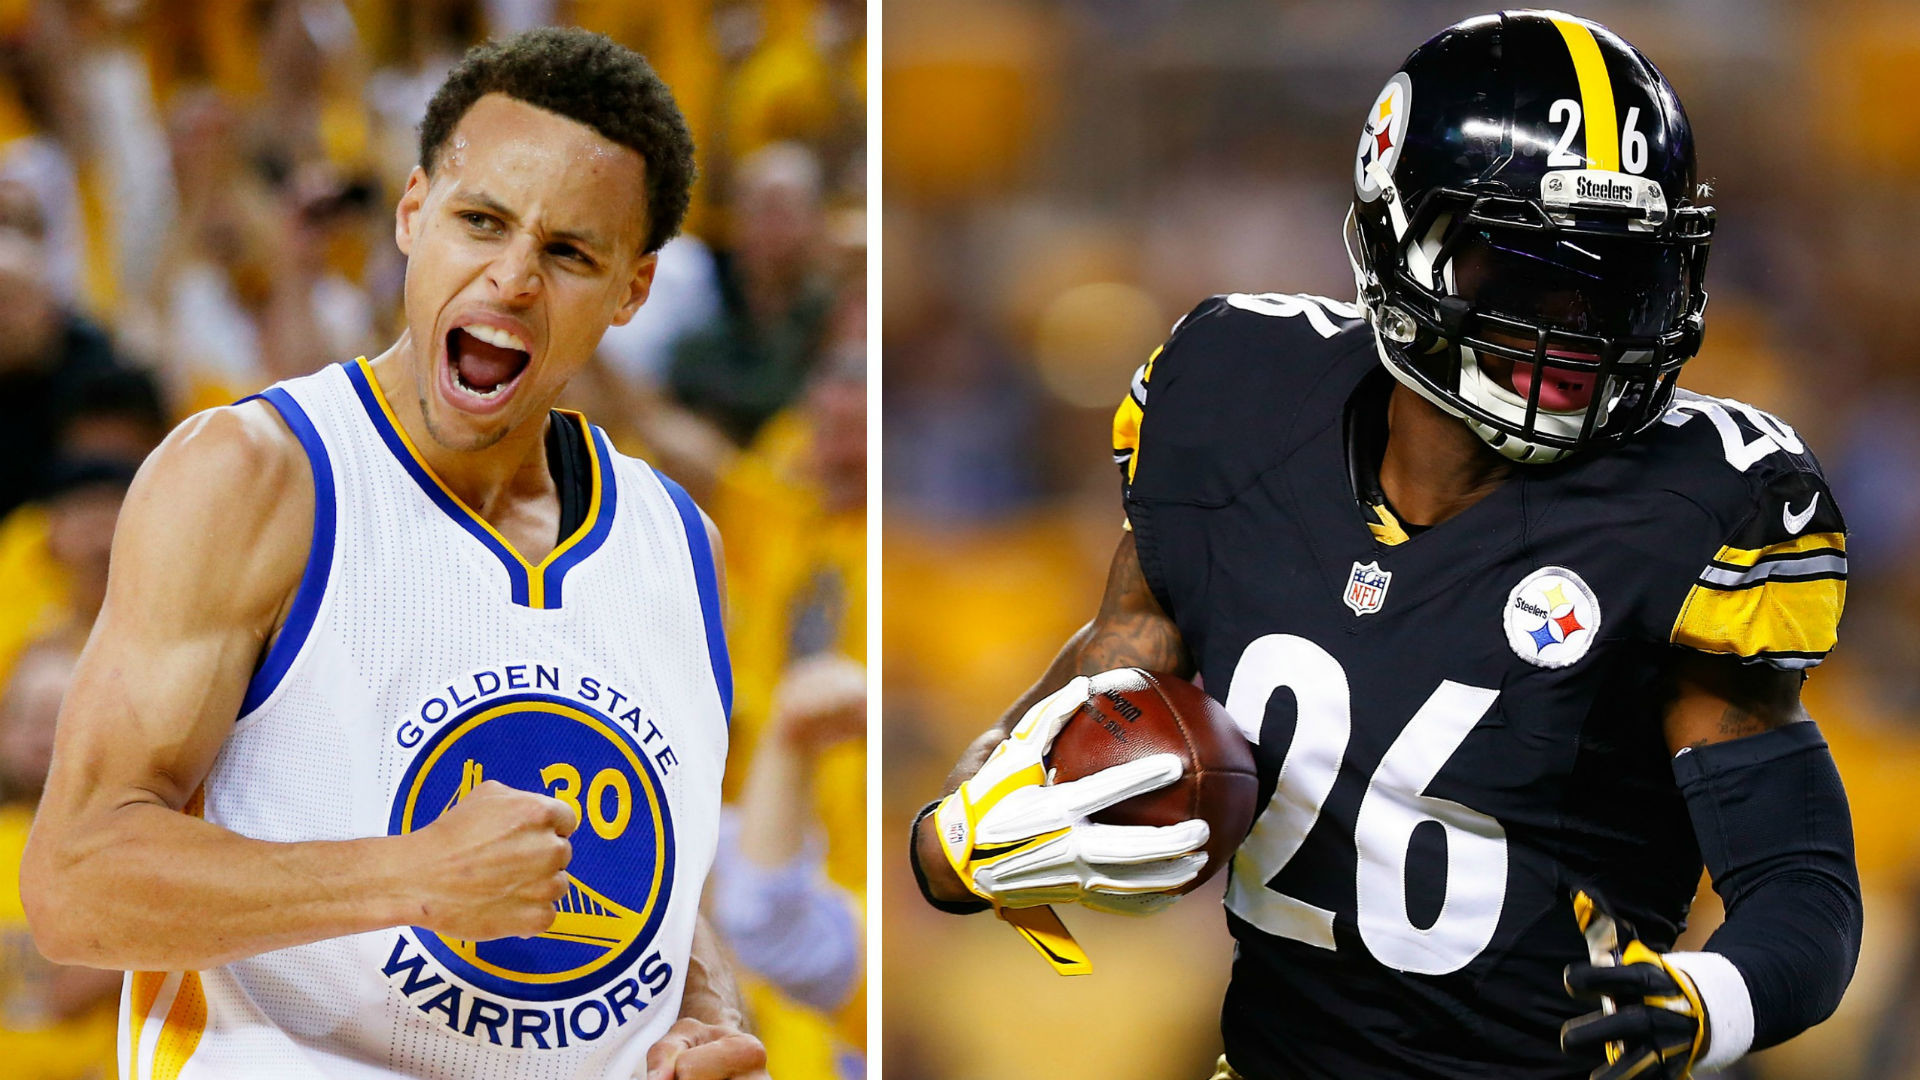 Le'Veon Bell, like Stephen Curry, is much more anomaly than trail blazer |  NFL | Sporting News